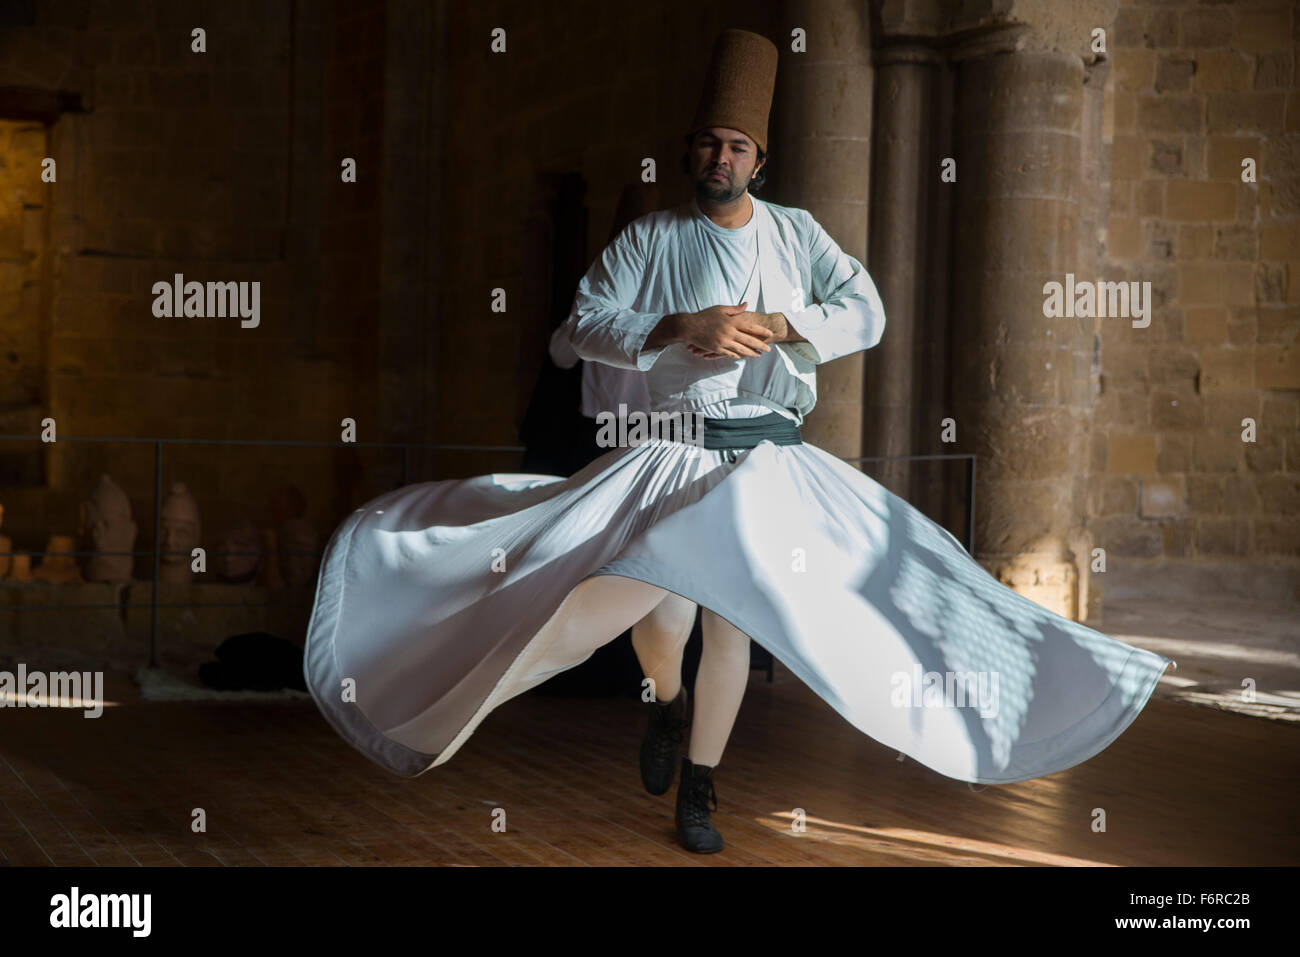 Whirling Dervishes dance in Nicosia, northern Cyprus - Stock Image